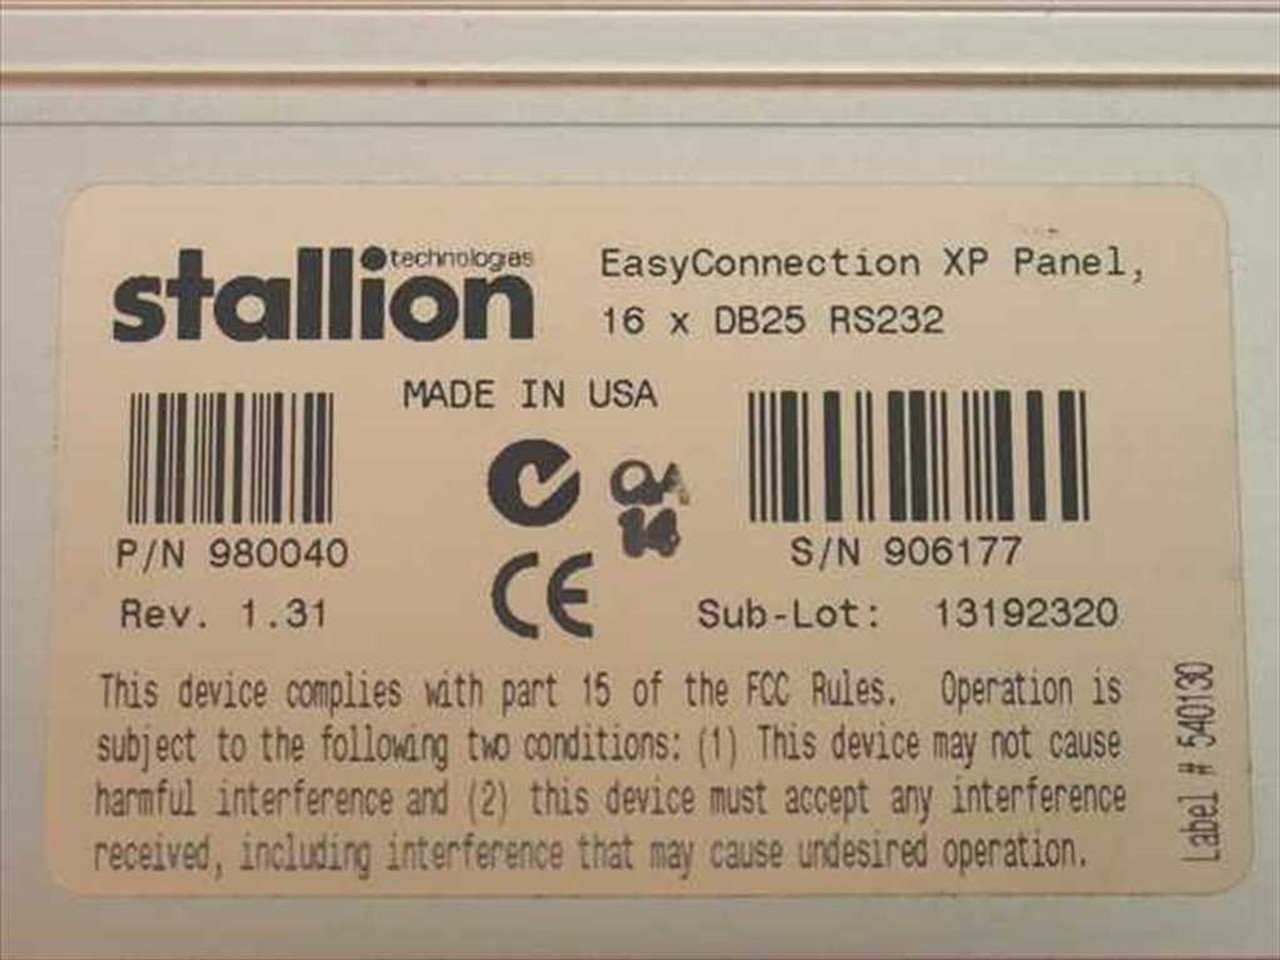 Stallion Technologies Easyconnection Xp Panel 16 Ports with DB25